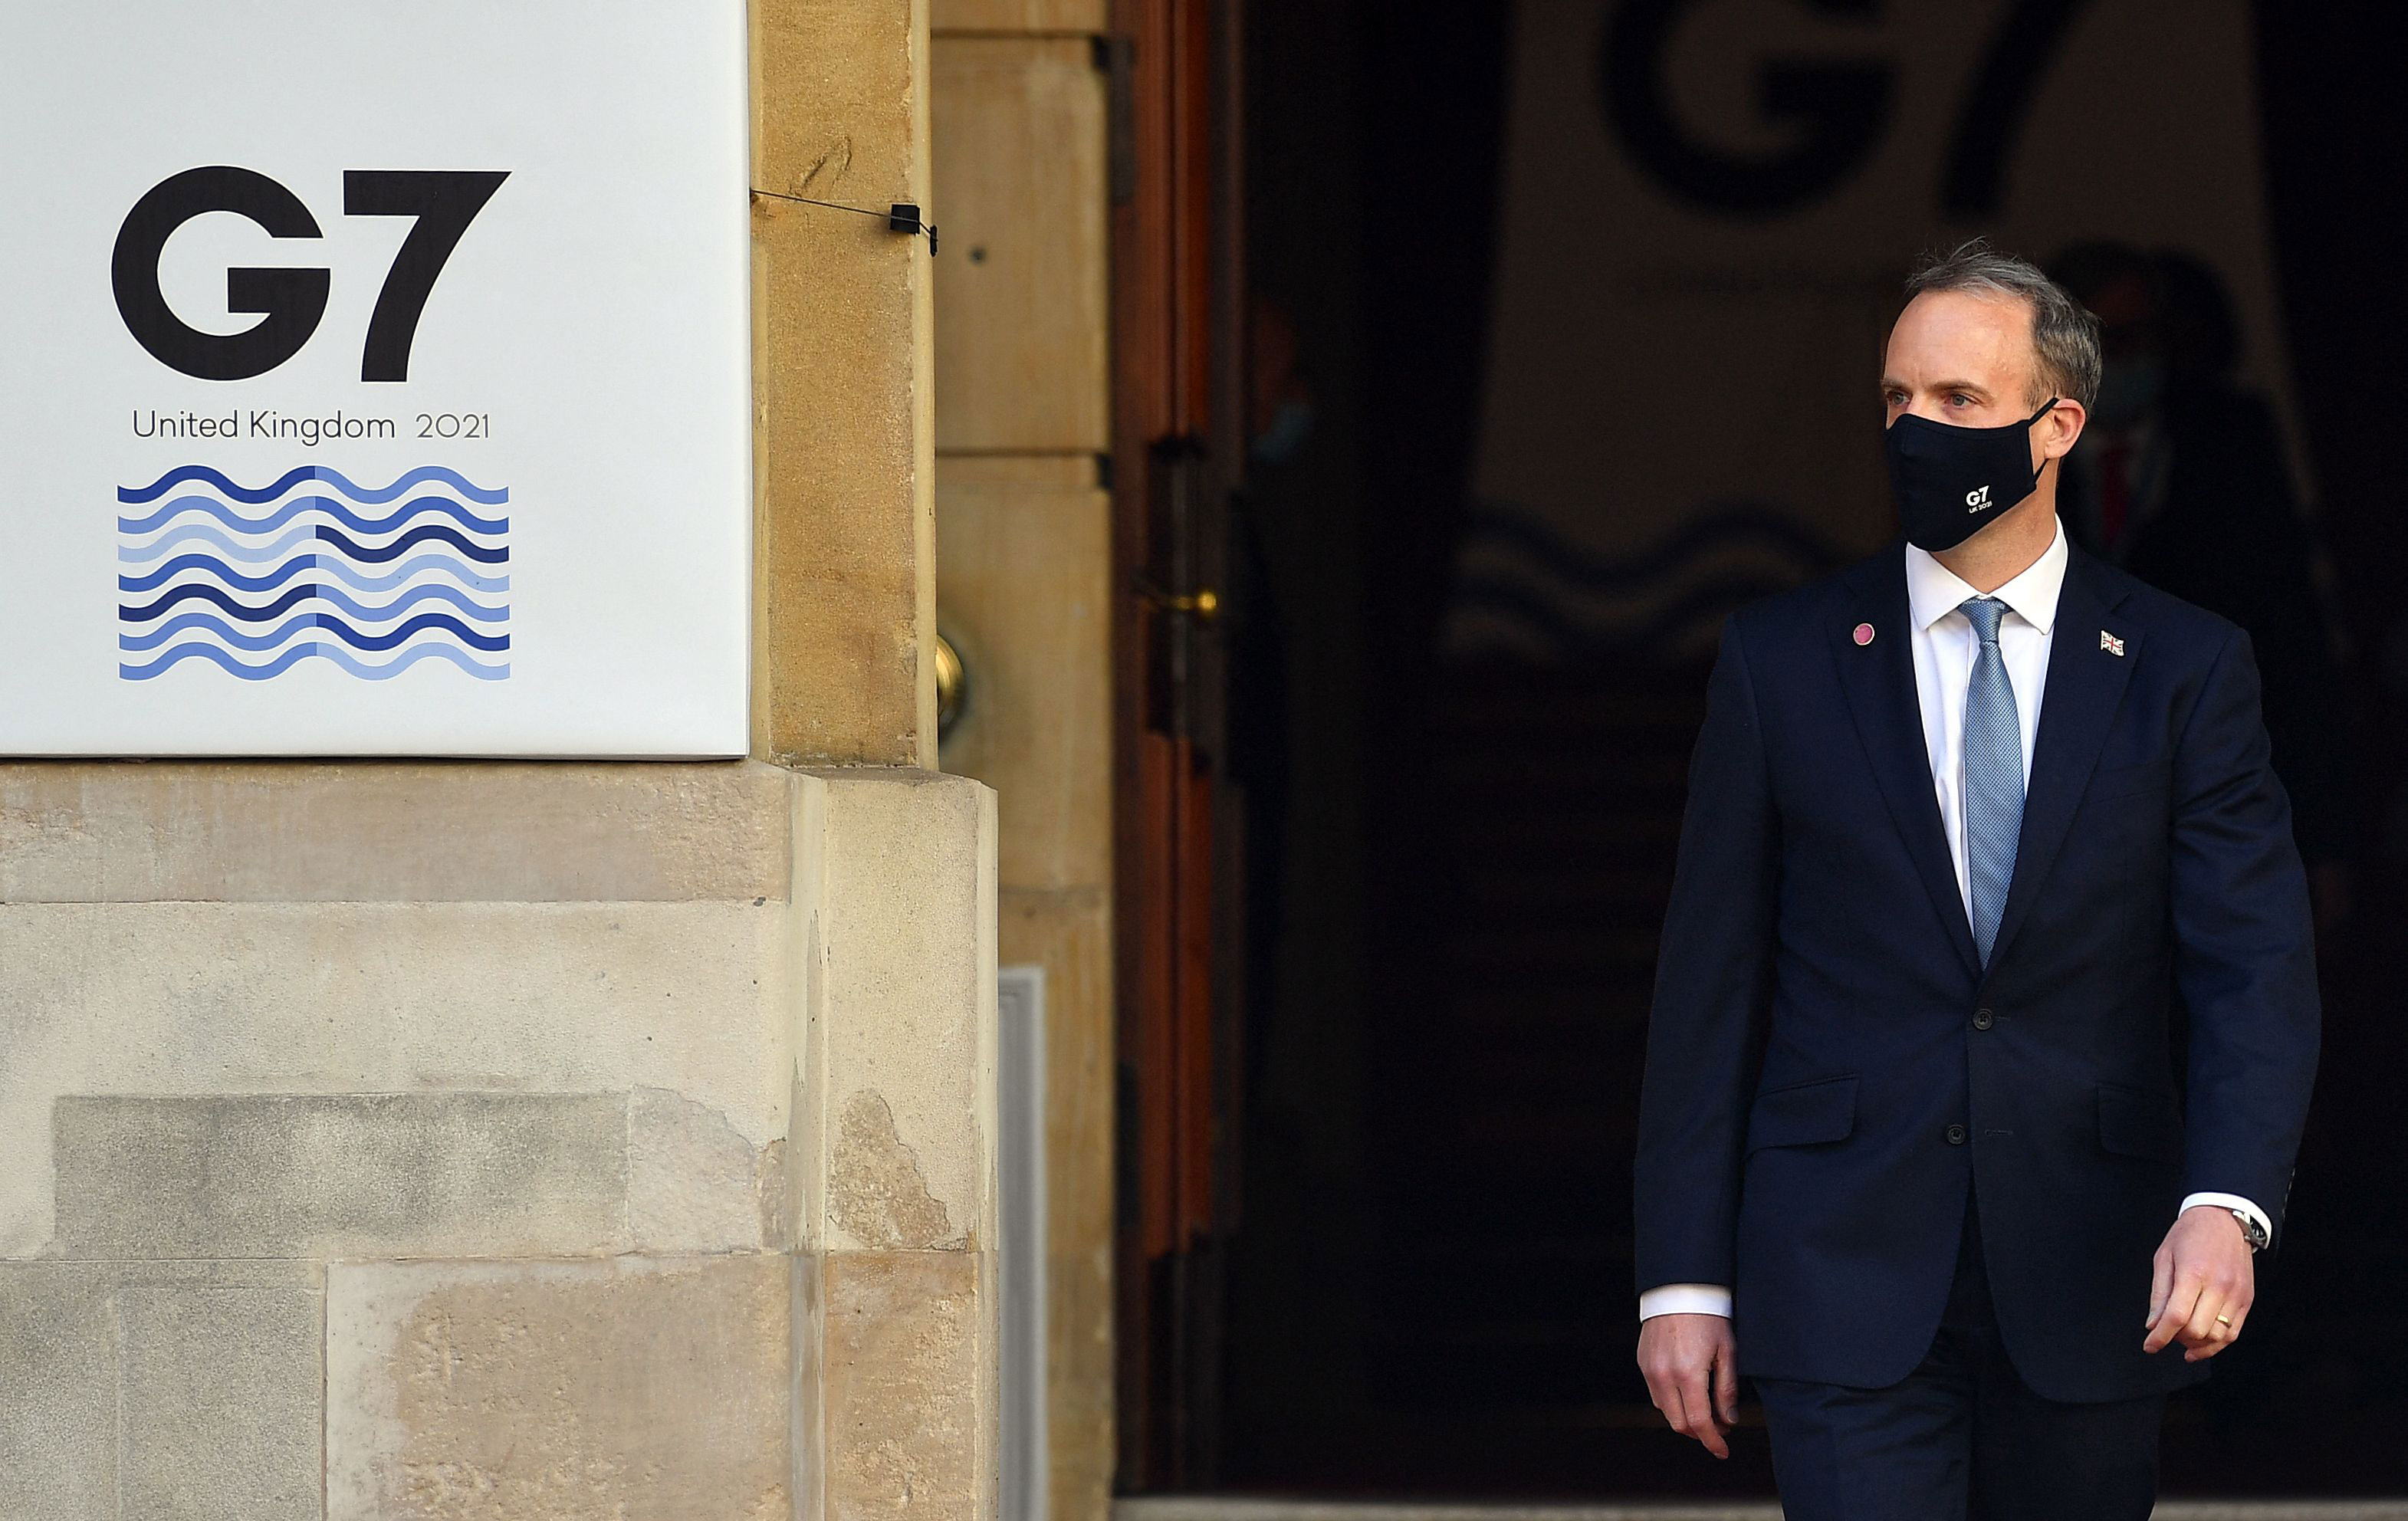 UK Foreign Secretary Dominic Raab waits to greet participants at the G7 foreign and development ministers' meeting in London on May 5, 2021.